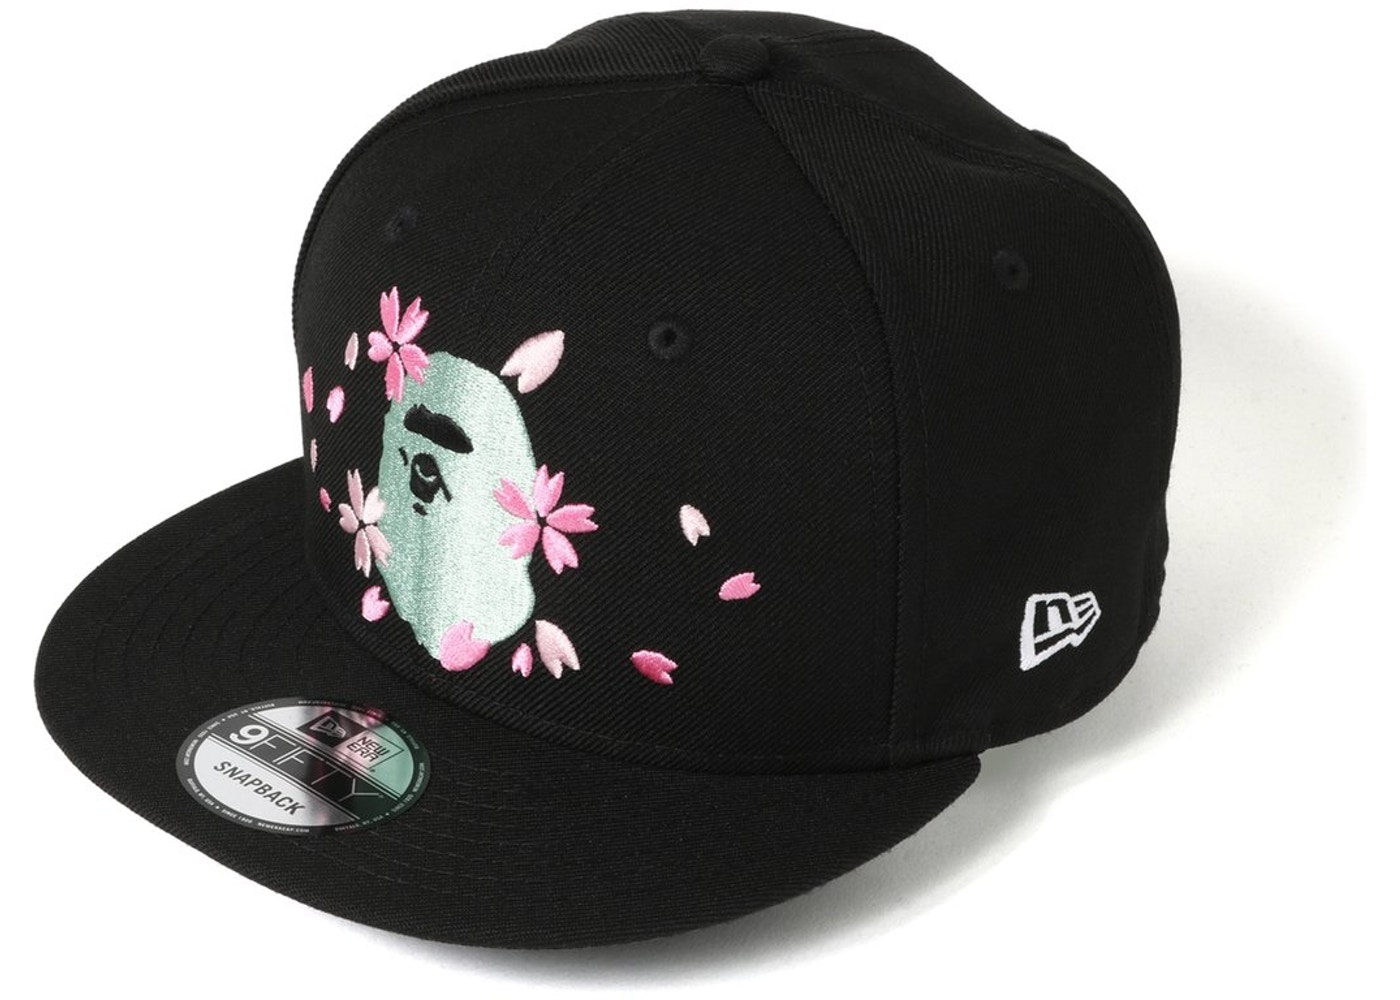 101e15b1bcf Streetwear - Bape Headwear - Average Sale Price